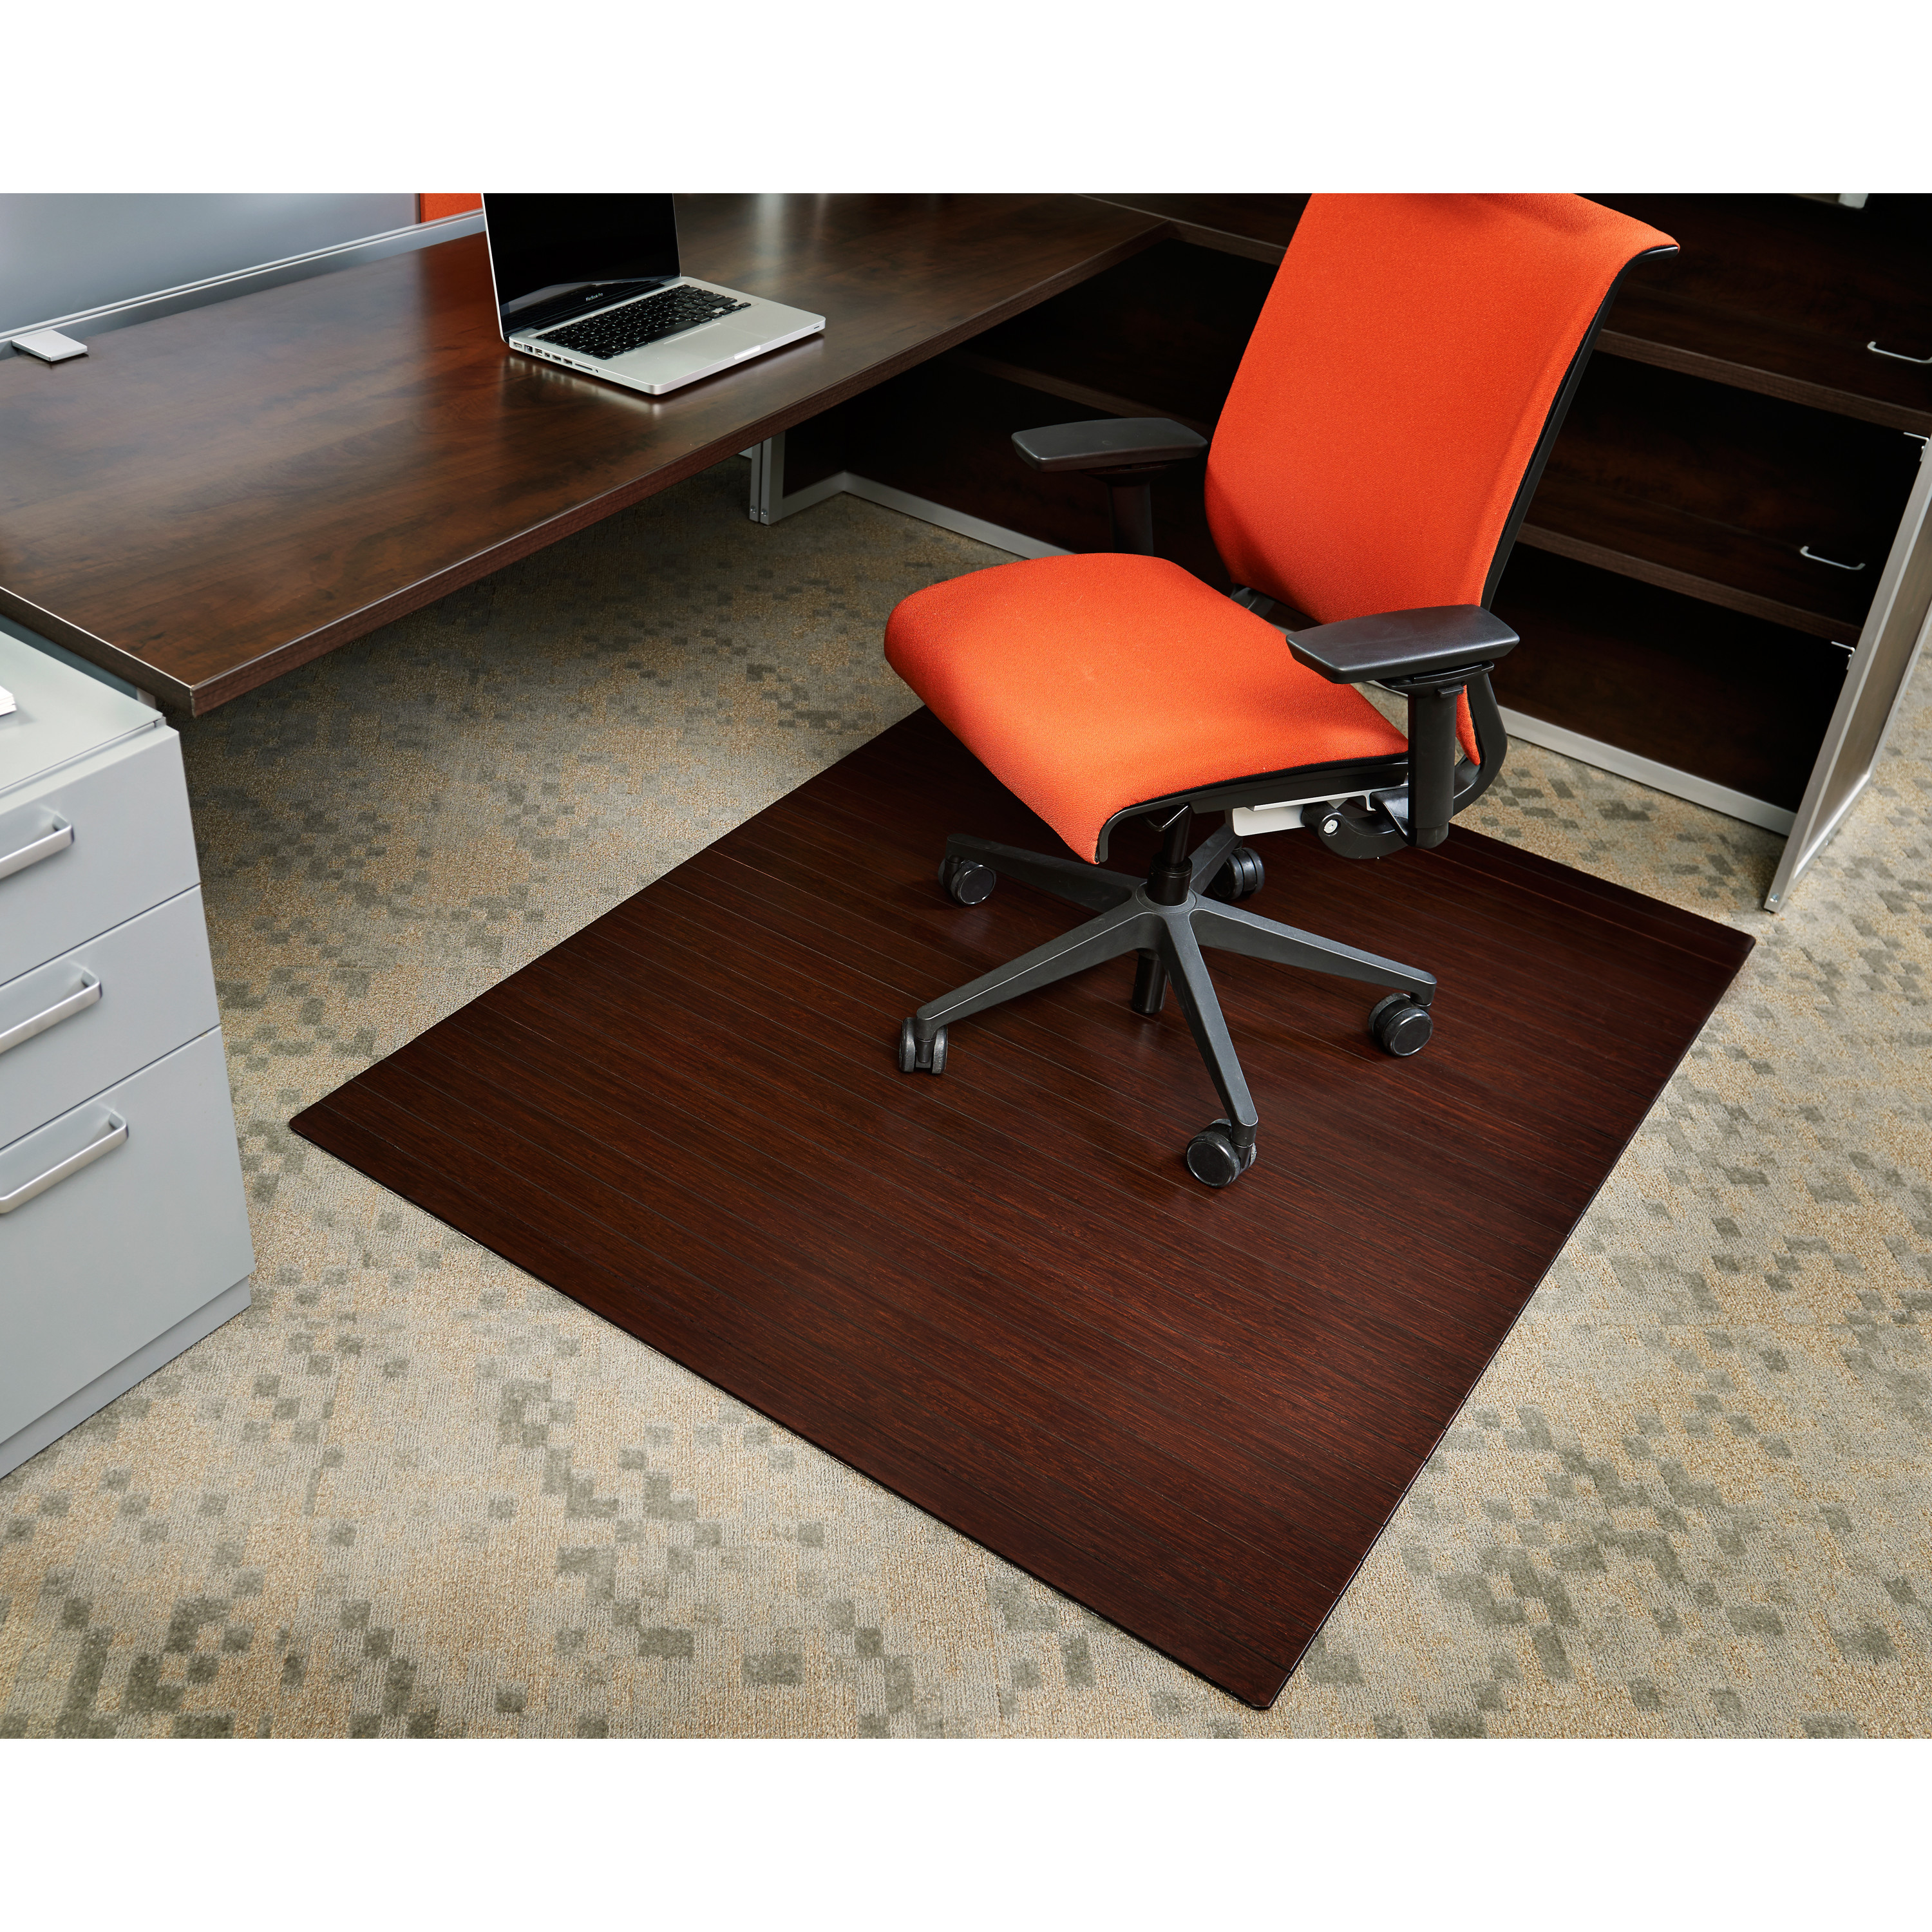 Best ideas about Office Chair Mats . Save or Pin Symple Stuff Bamboo Rectangular fice Chair Mat & Reviews Now.